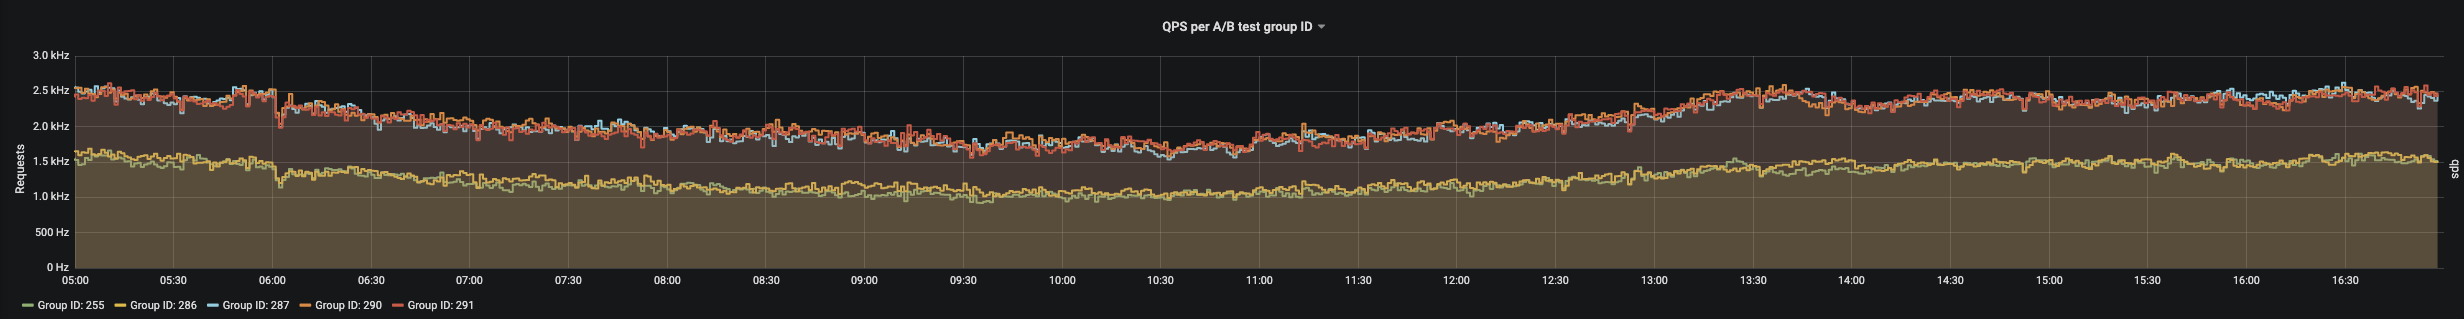 Queries per second per A/B test group (bare in mind that this is only a fraction of the traffic using the API's predictions because they are cached on the server)